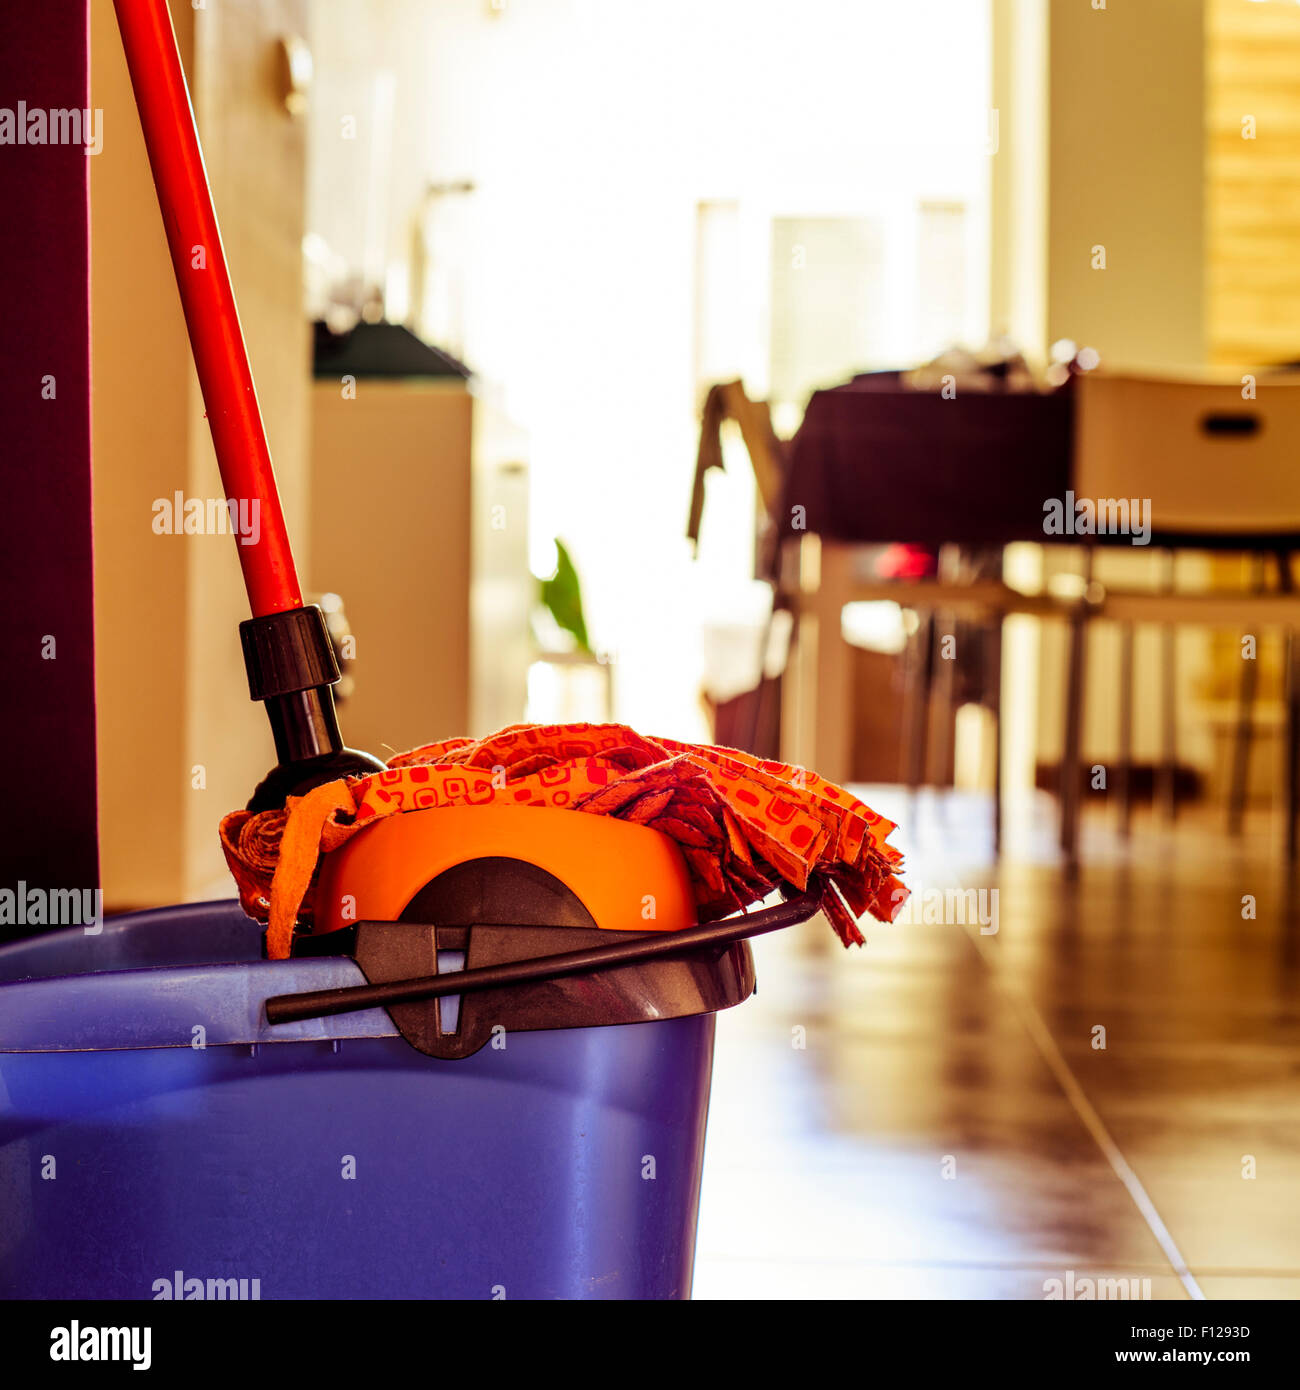 closeup of a microfiber mop in the dryer of a bucket ready to clean the floor - Stock Image